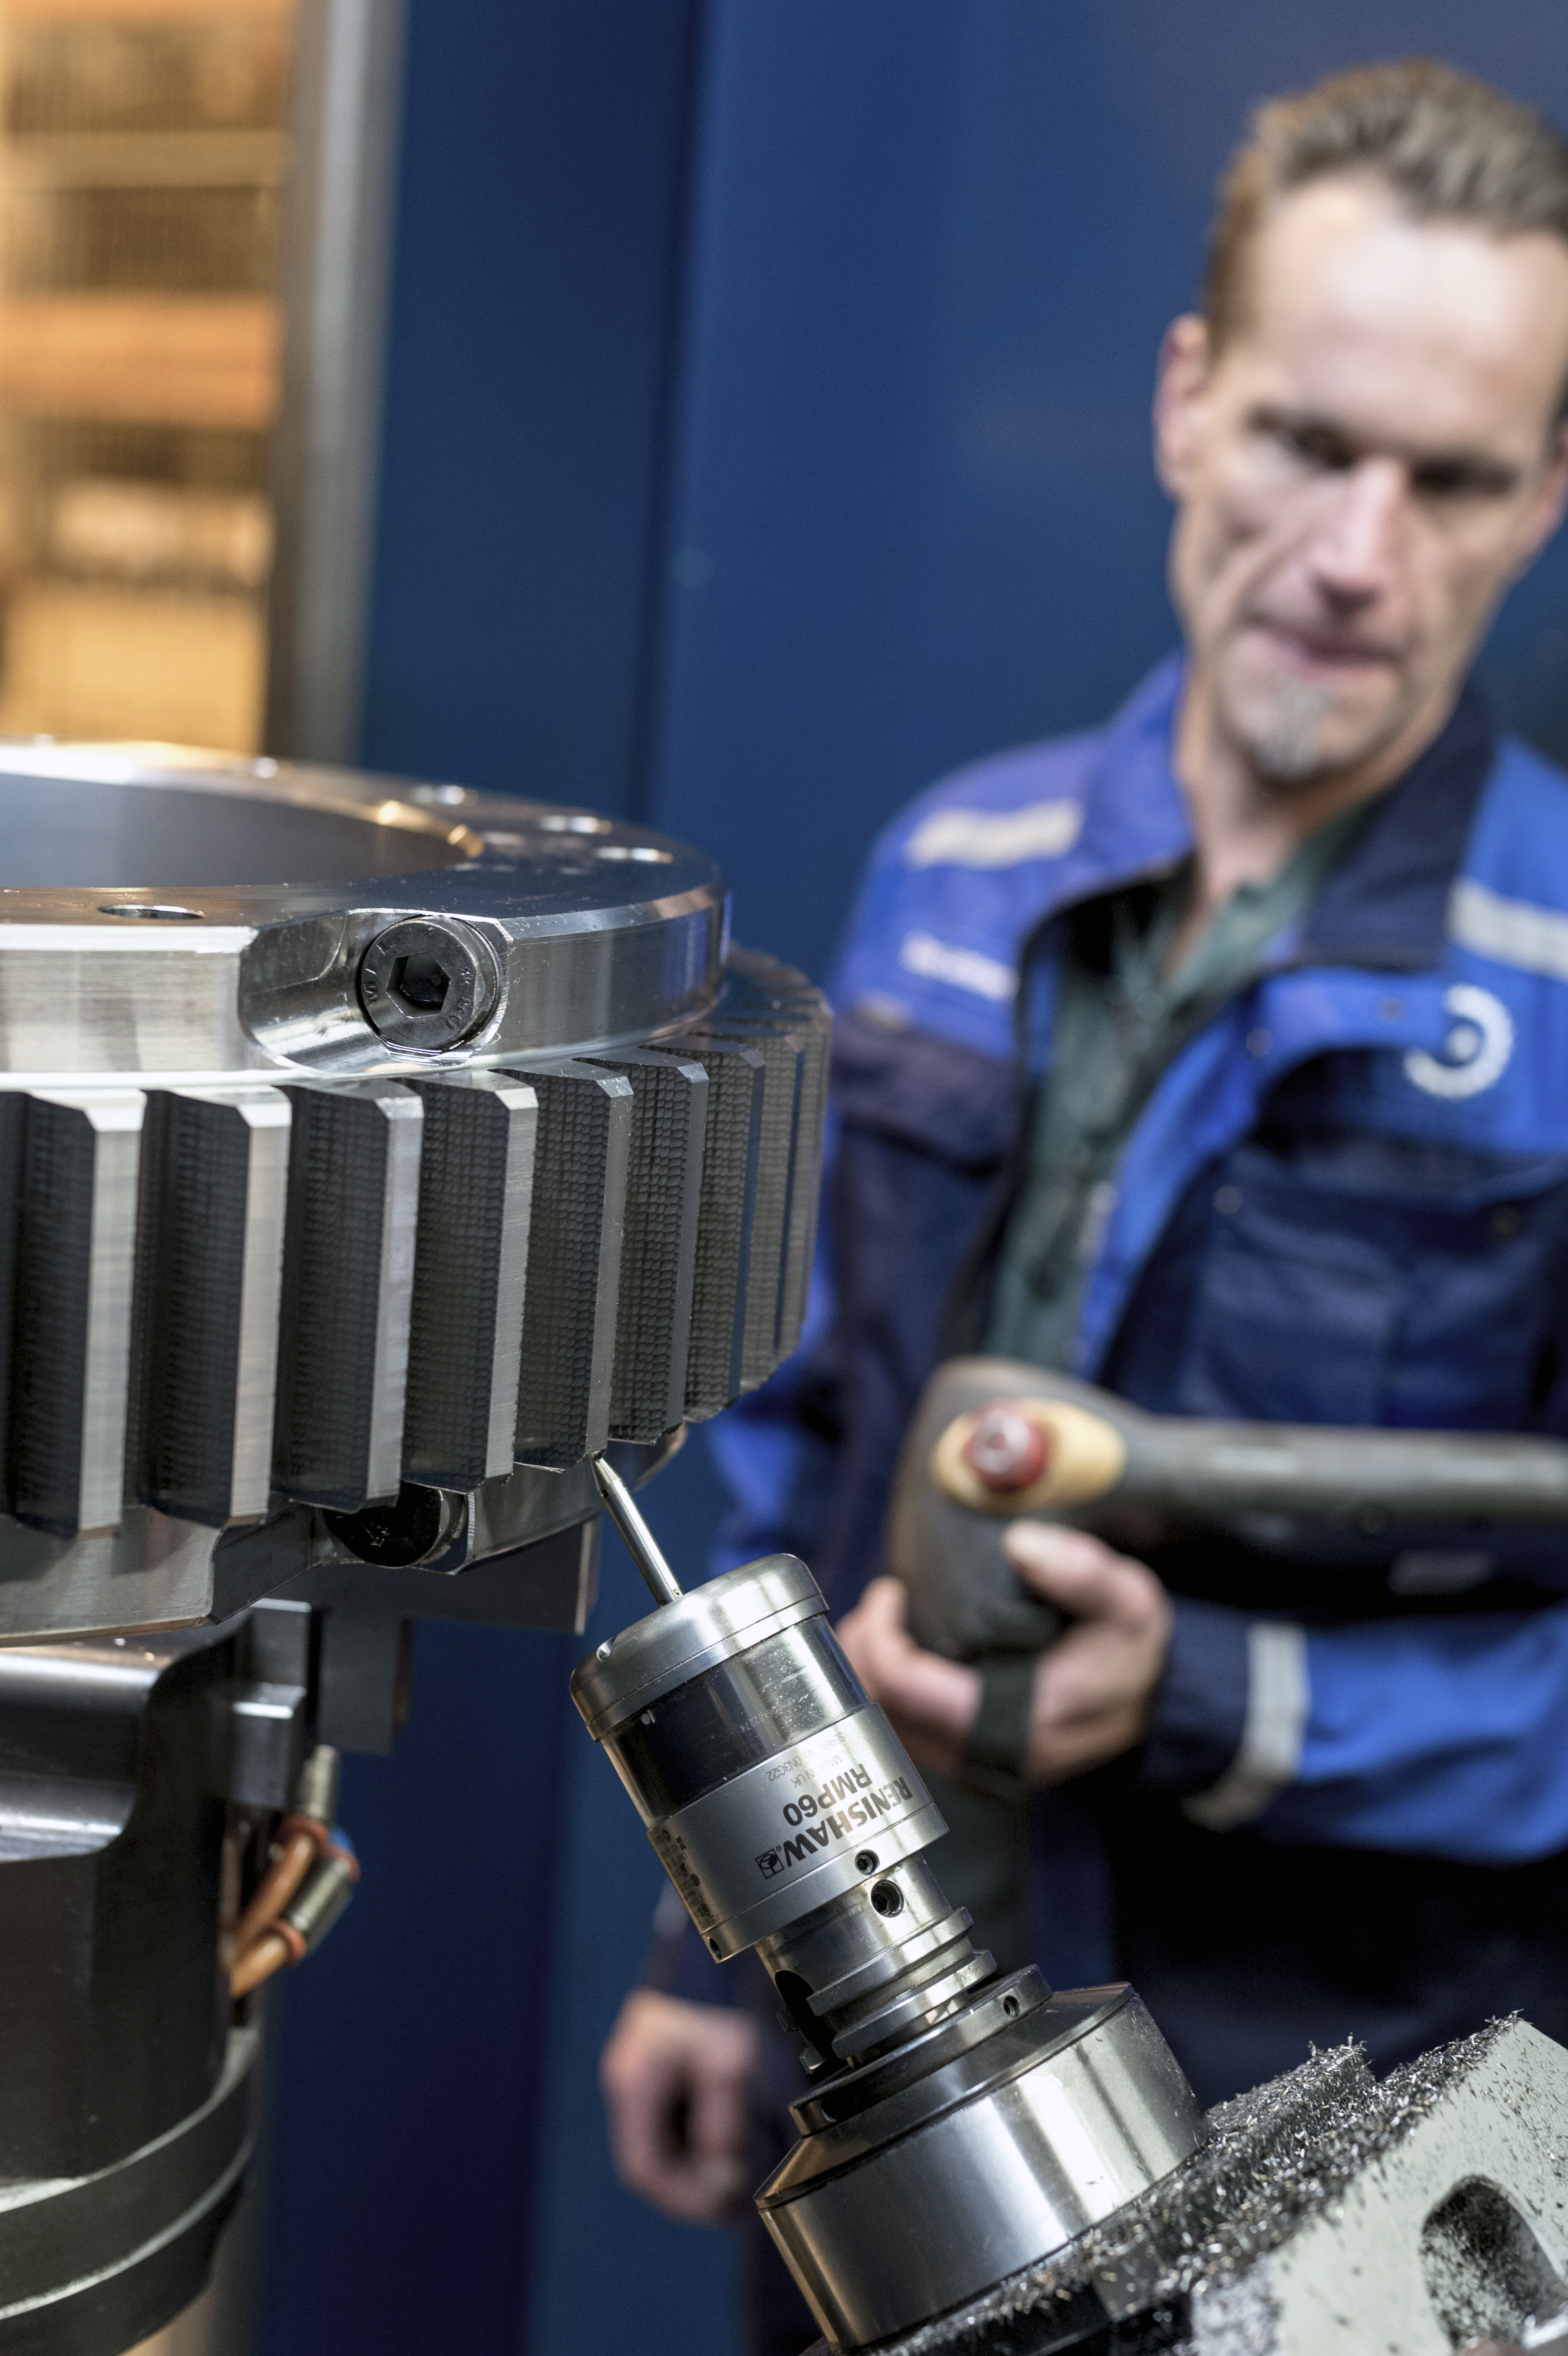 Gear manufacturer achieves consistent quality with automated